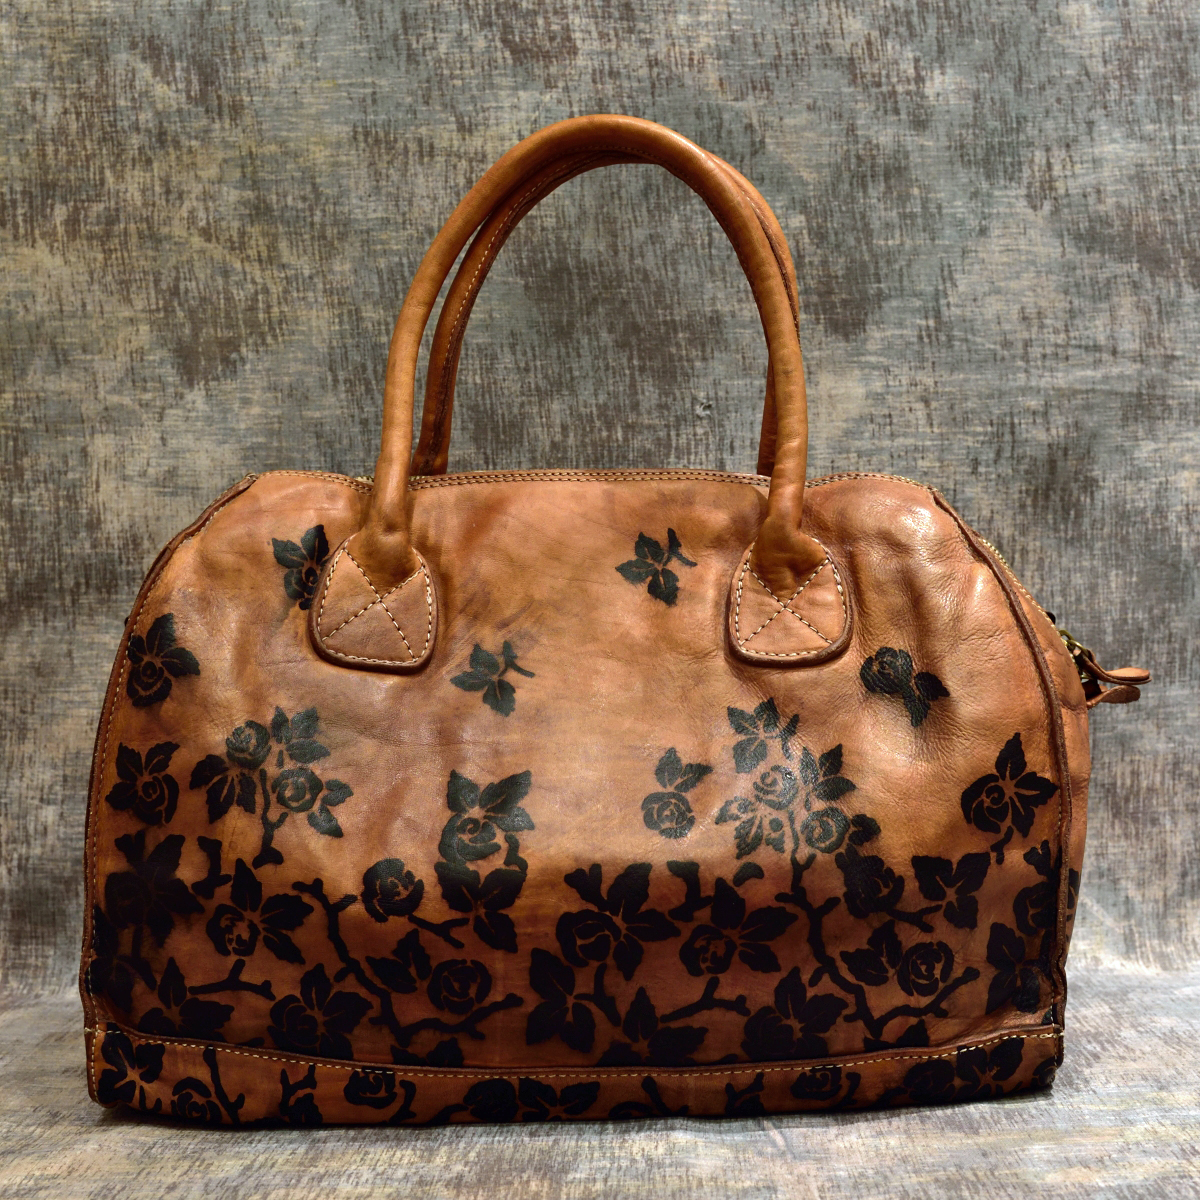 leather hanbag roses